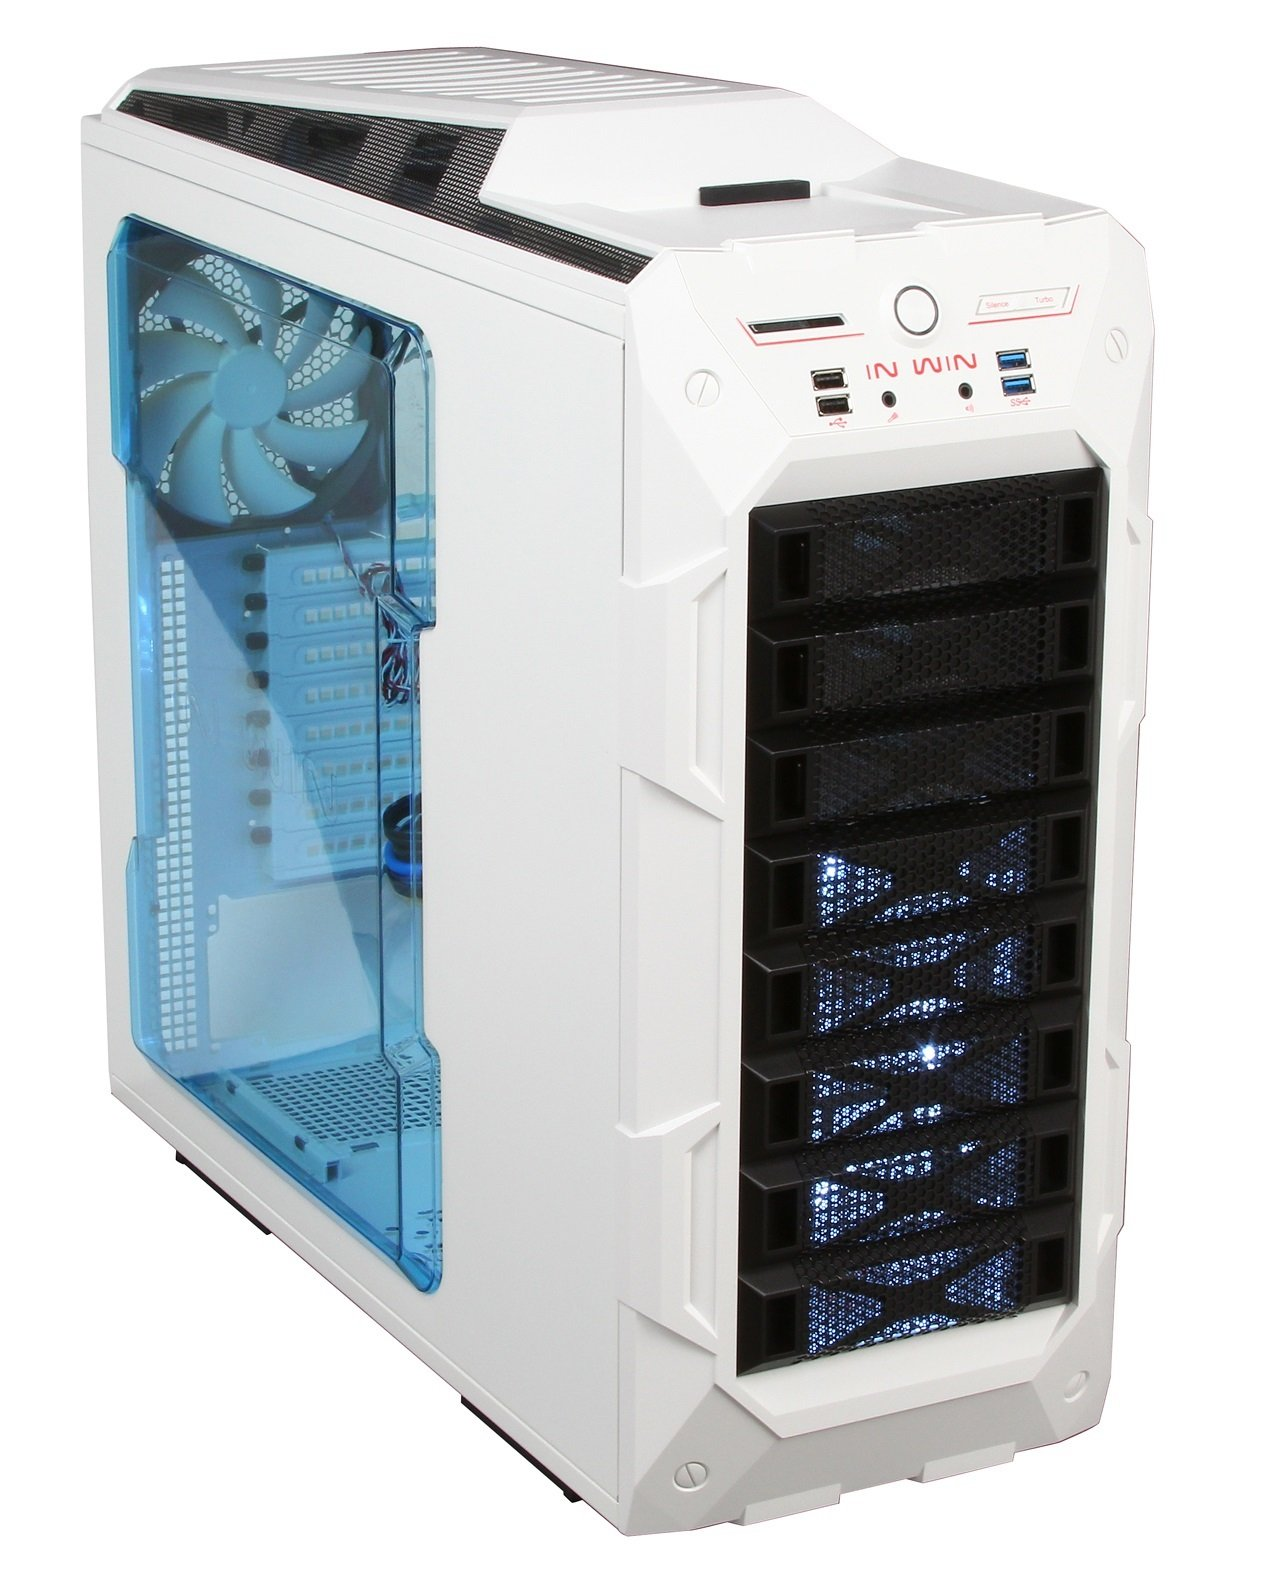 In Win GR One/White Sleek SECC ATX Full Tower Computer Case ATX 12V/EPS Power Supply Compatible